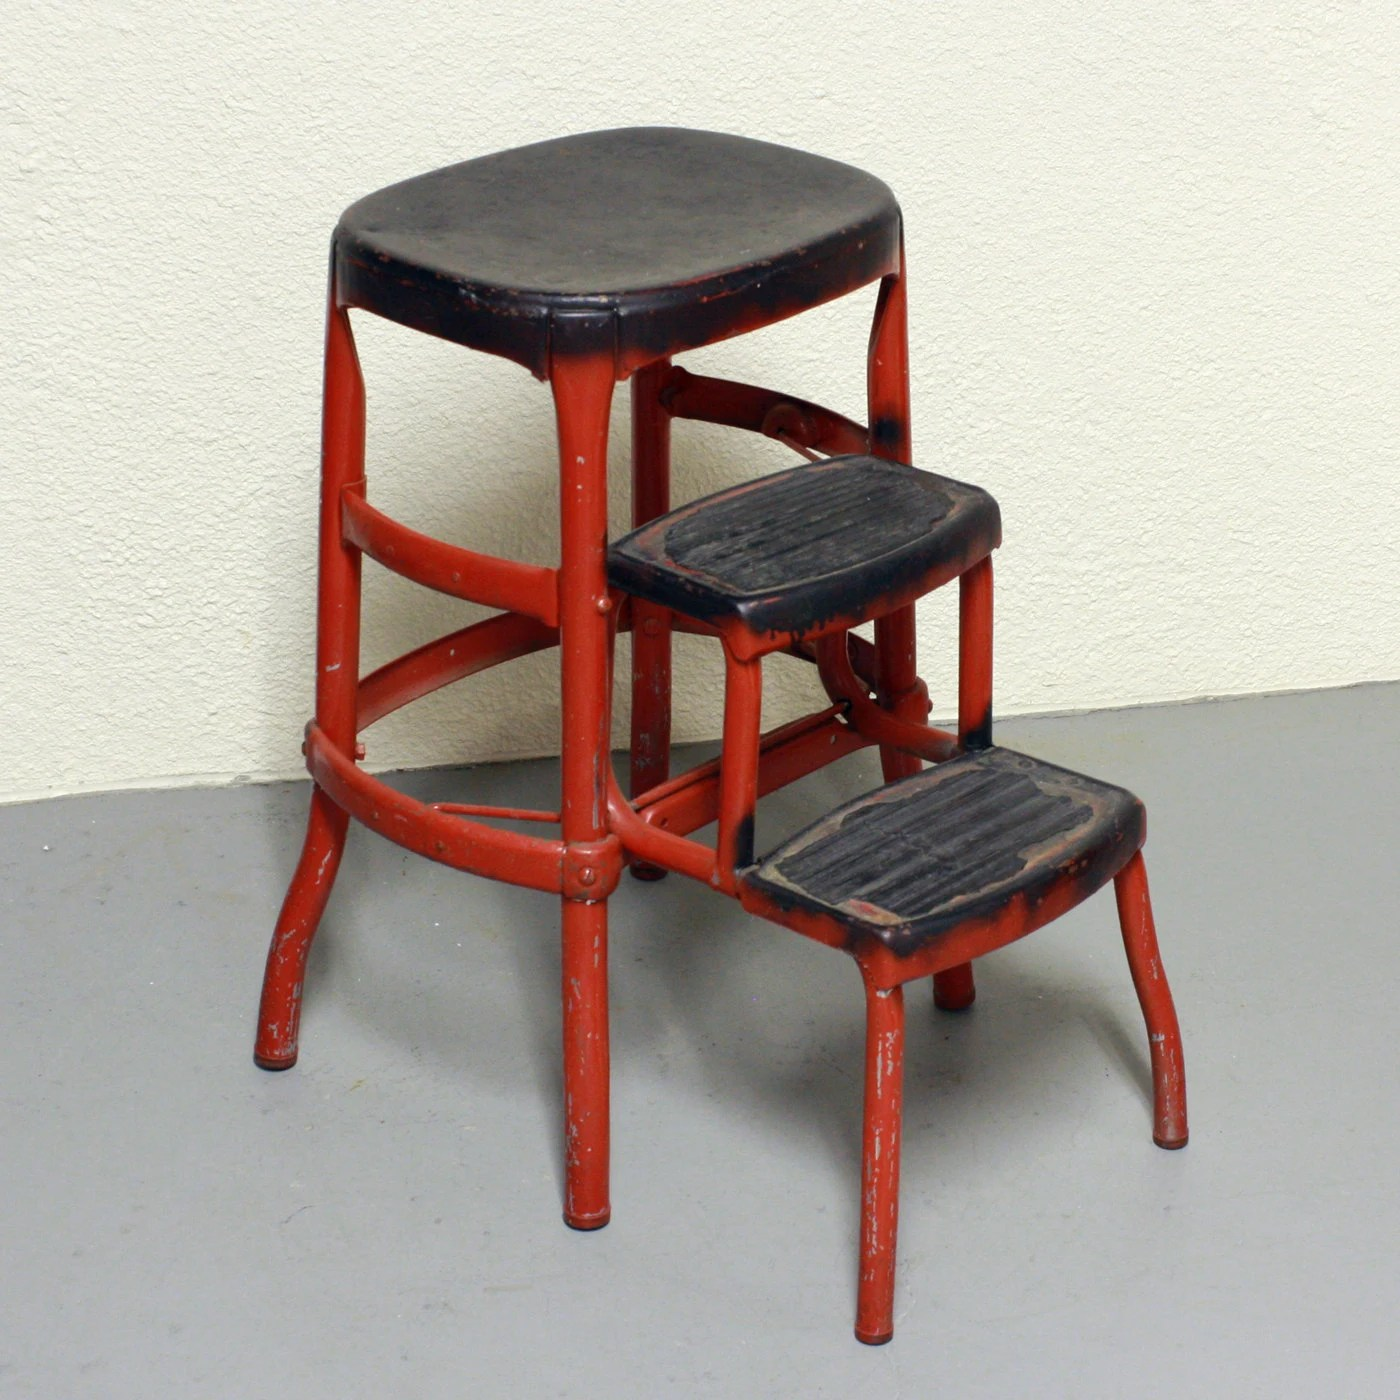 Cosco step stool chair - Kitchen Step Stool Designing Ideas A1houstoncom